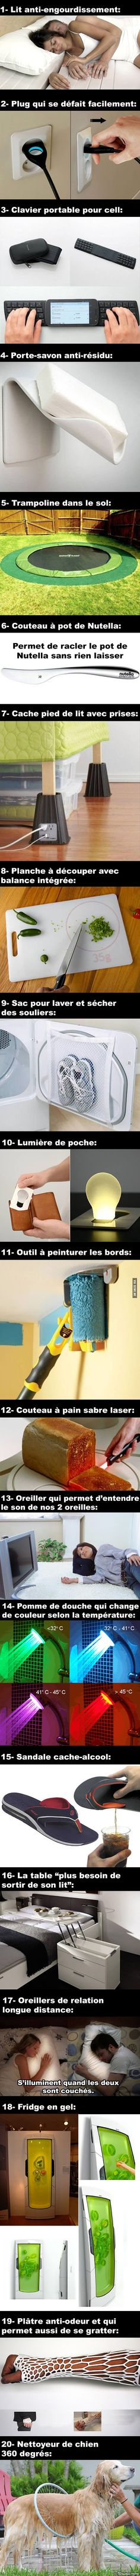 20 Inventions dont on a trop besoin Québec Meme Take My Money, Cool Inventions, Tecno, Cool Gadgets, Geek Stuff, Jokes, Cool Stuff, The Originals, Funny